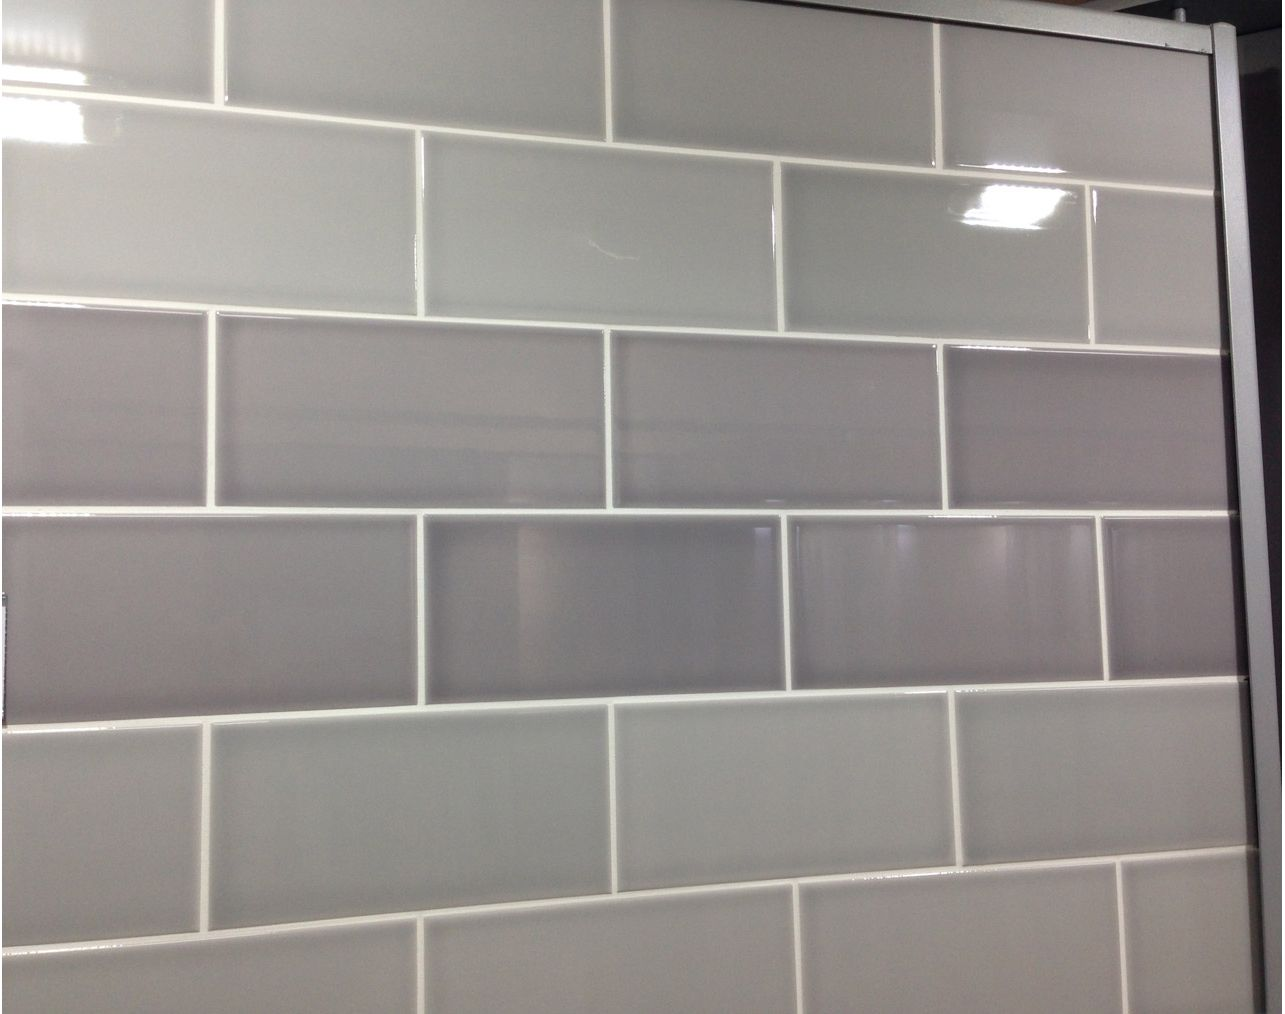 Gloss Silver Metro Glazed Ceramic Wall Tile Suitable For